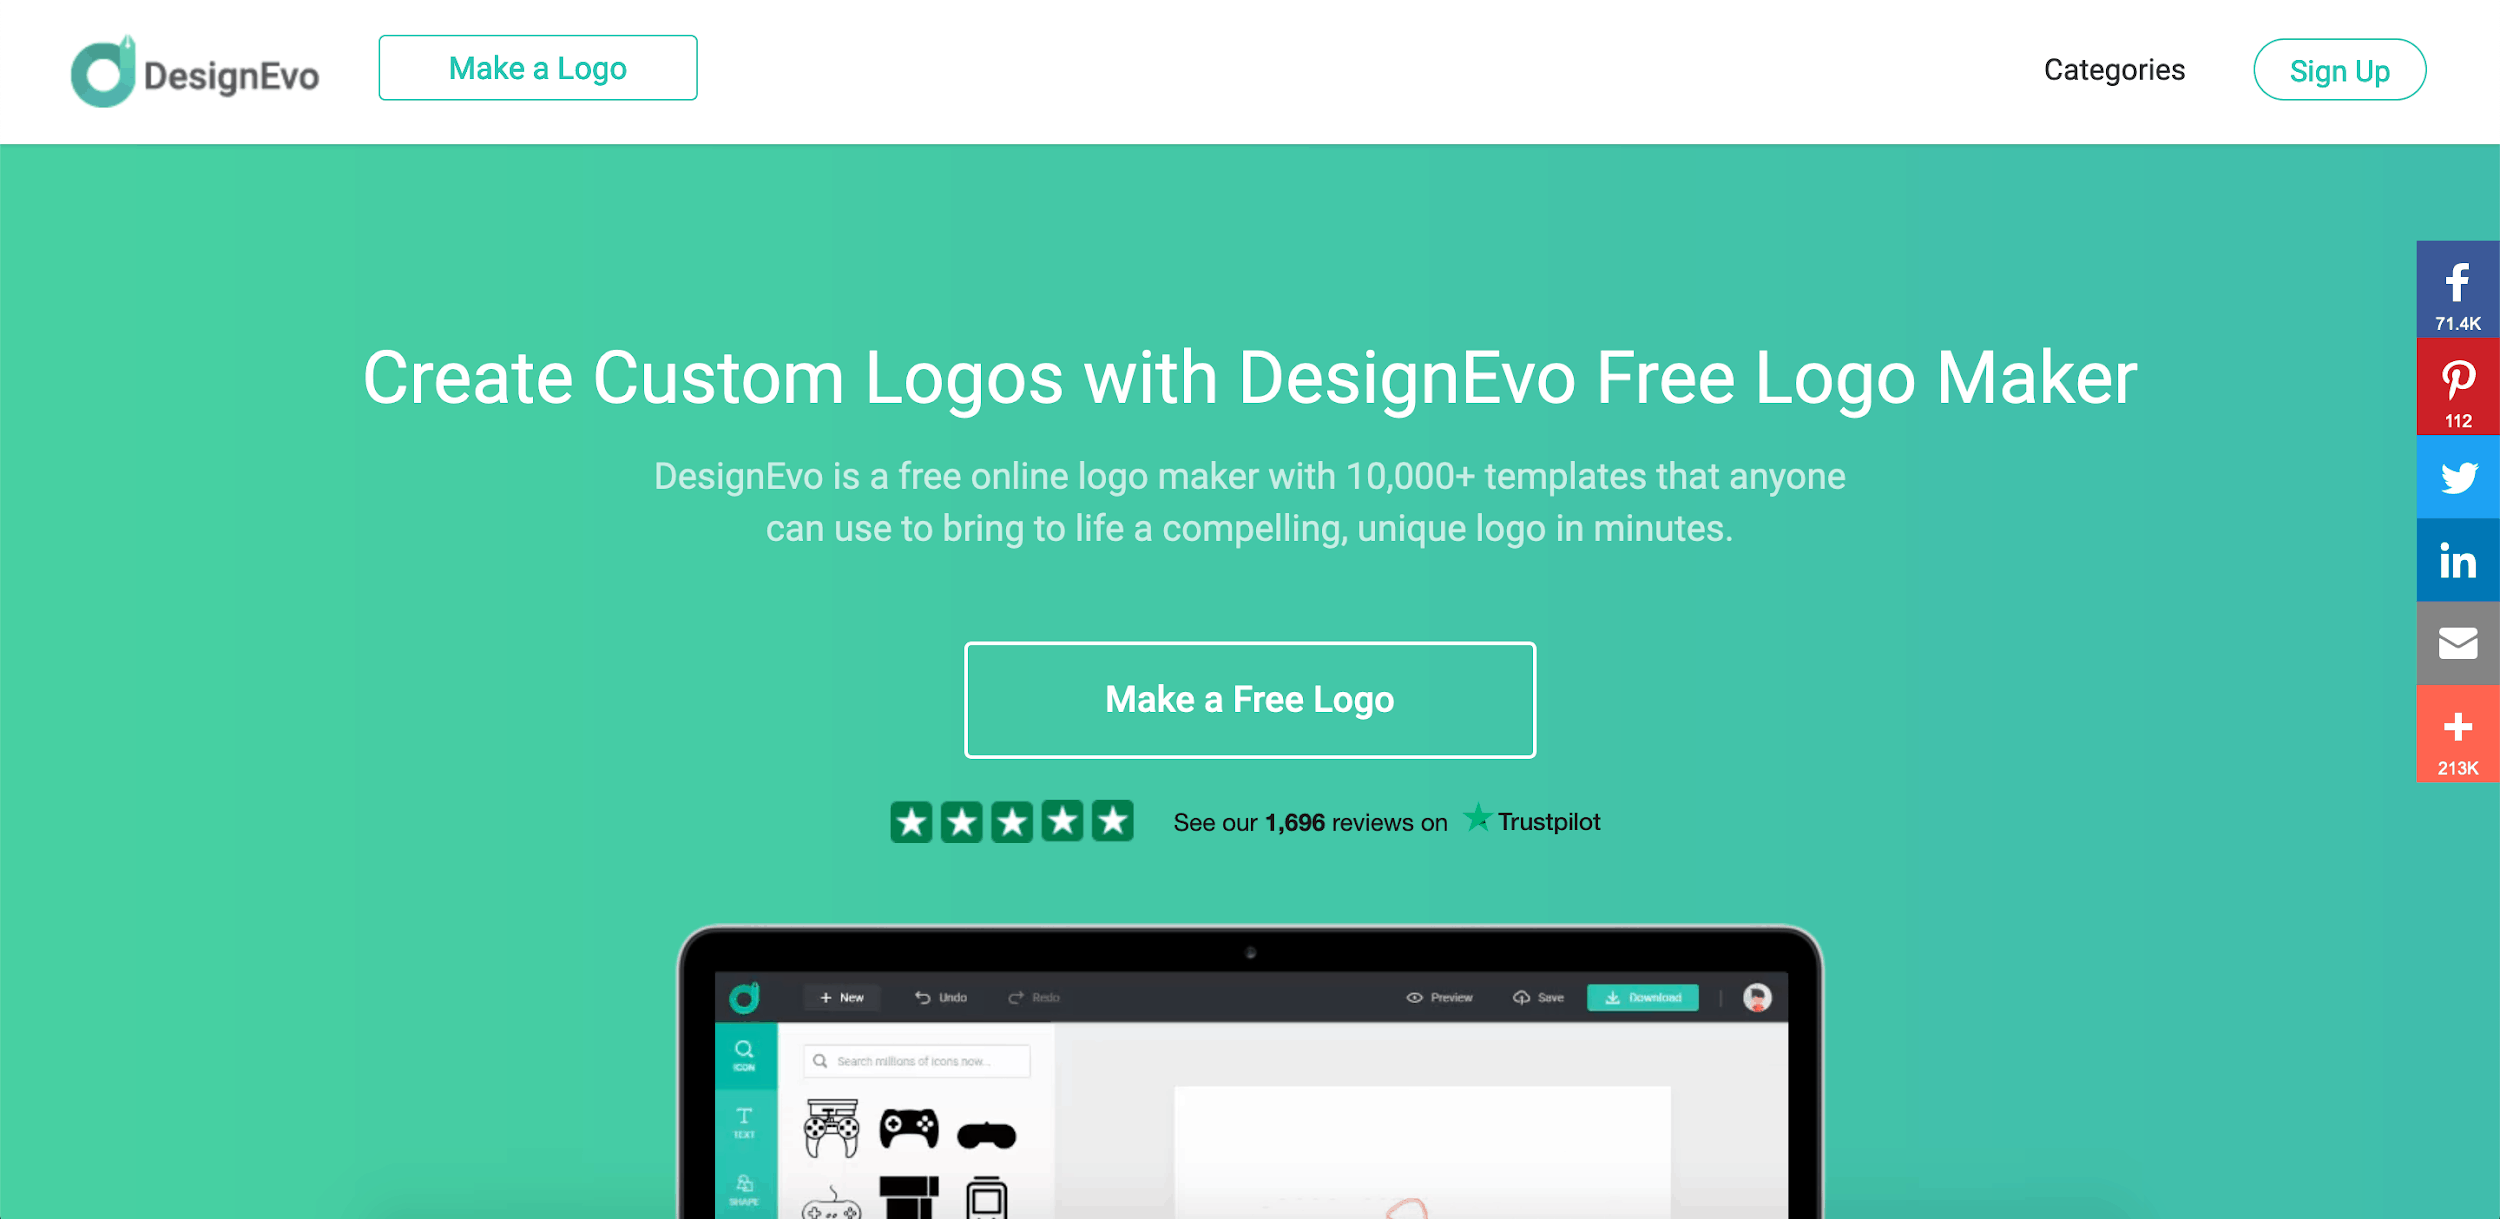 DesignEvo screenshot - homepage